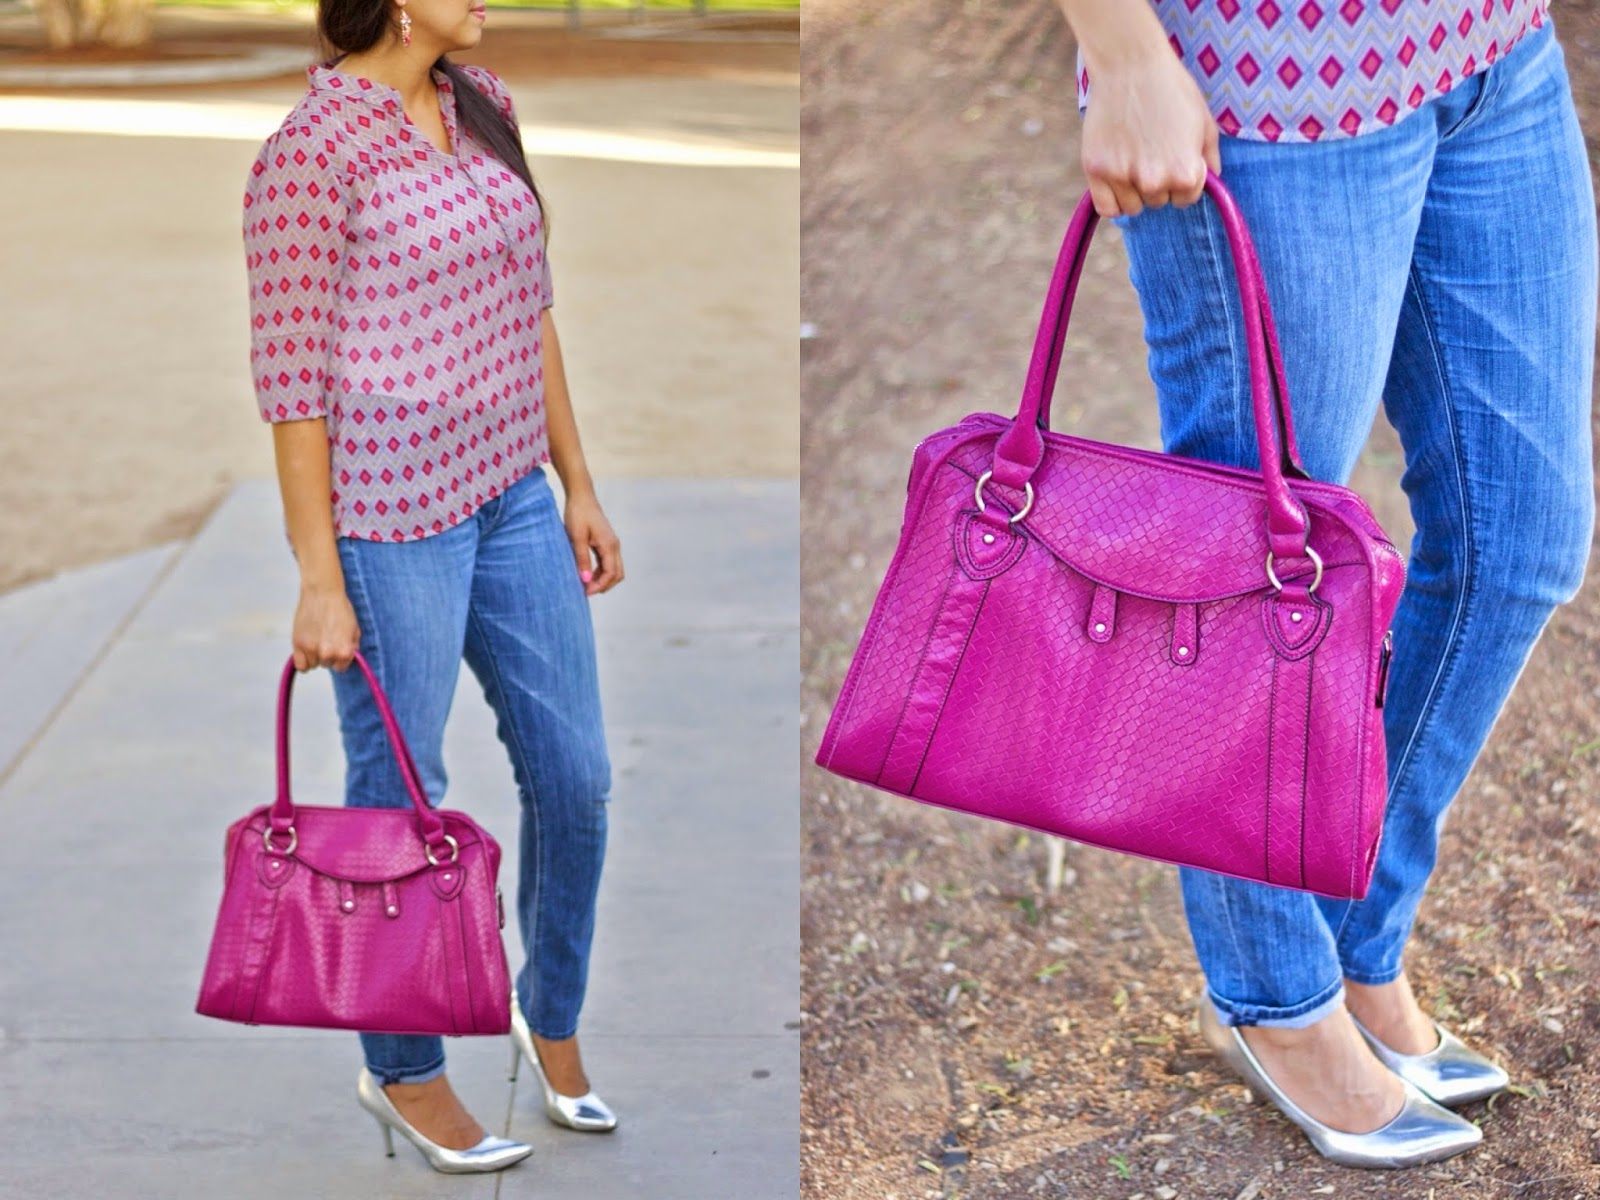 DownEast Basics Woven Attache Bag, Woven Attache Bag, purple purse, magenta handbag, chic casual outfit, silver heels